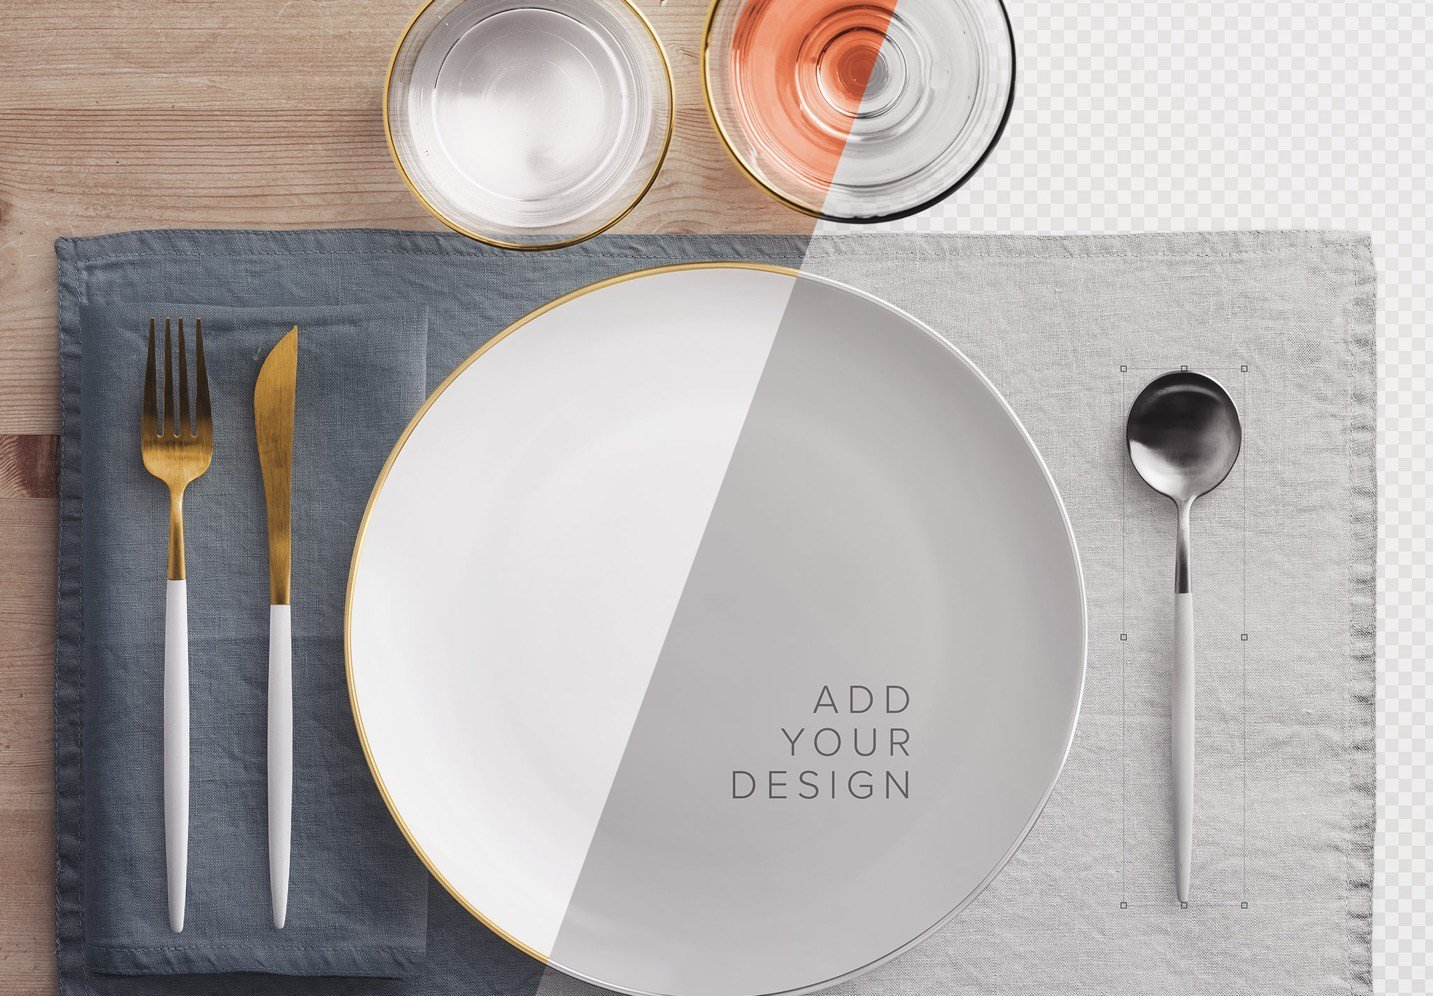 dinner table scene creator mockup image01